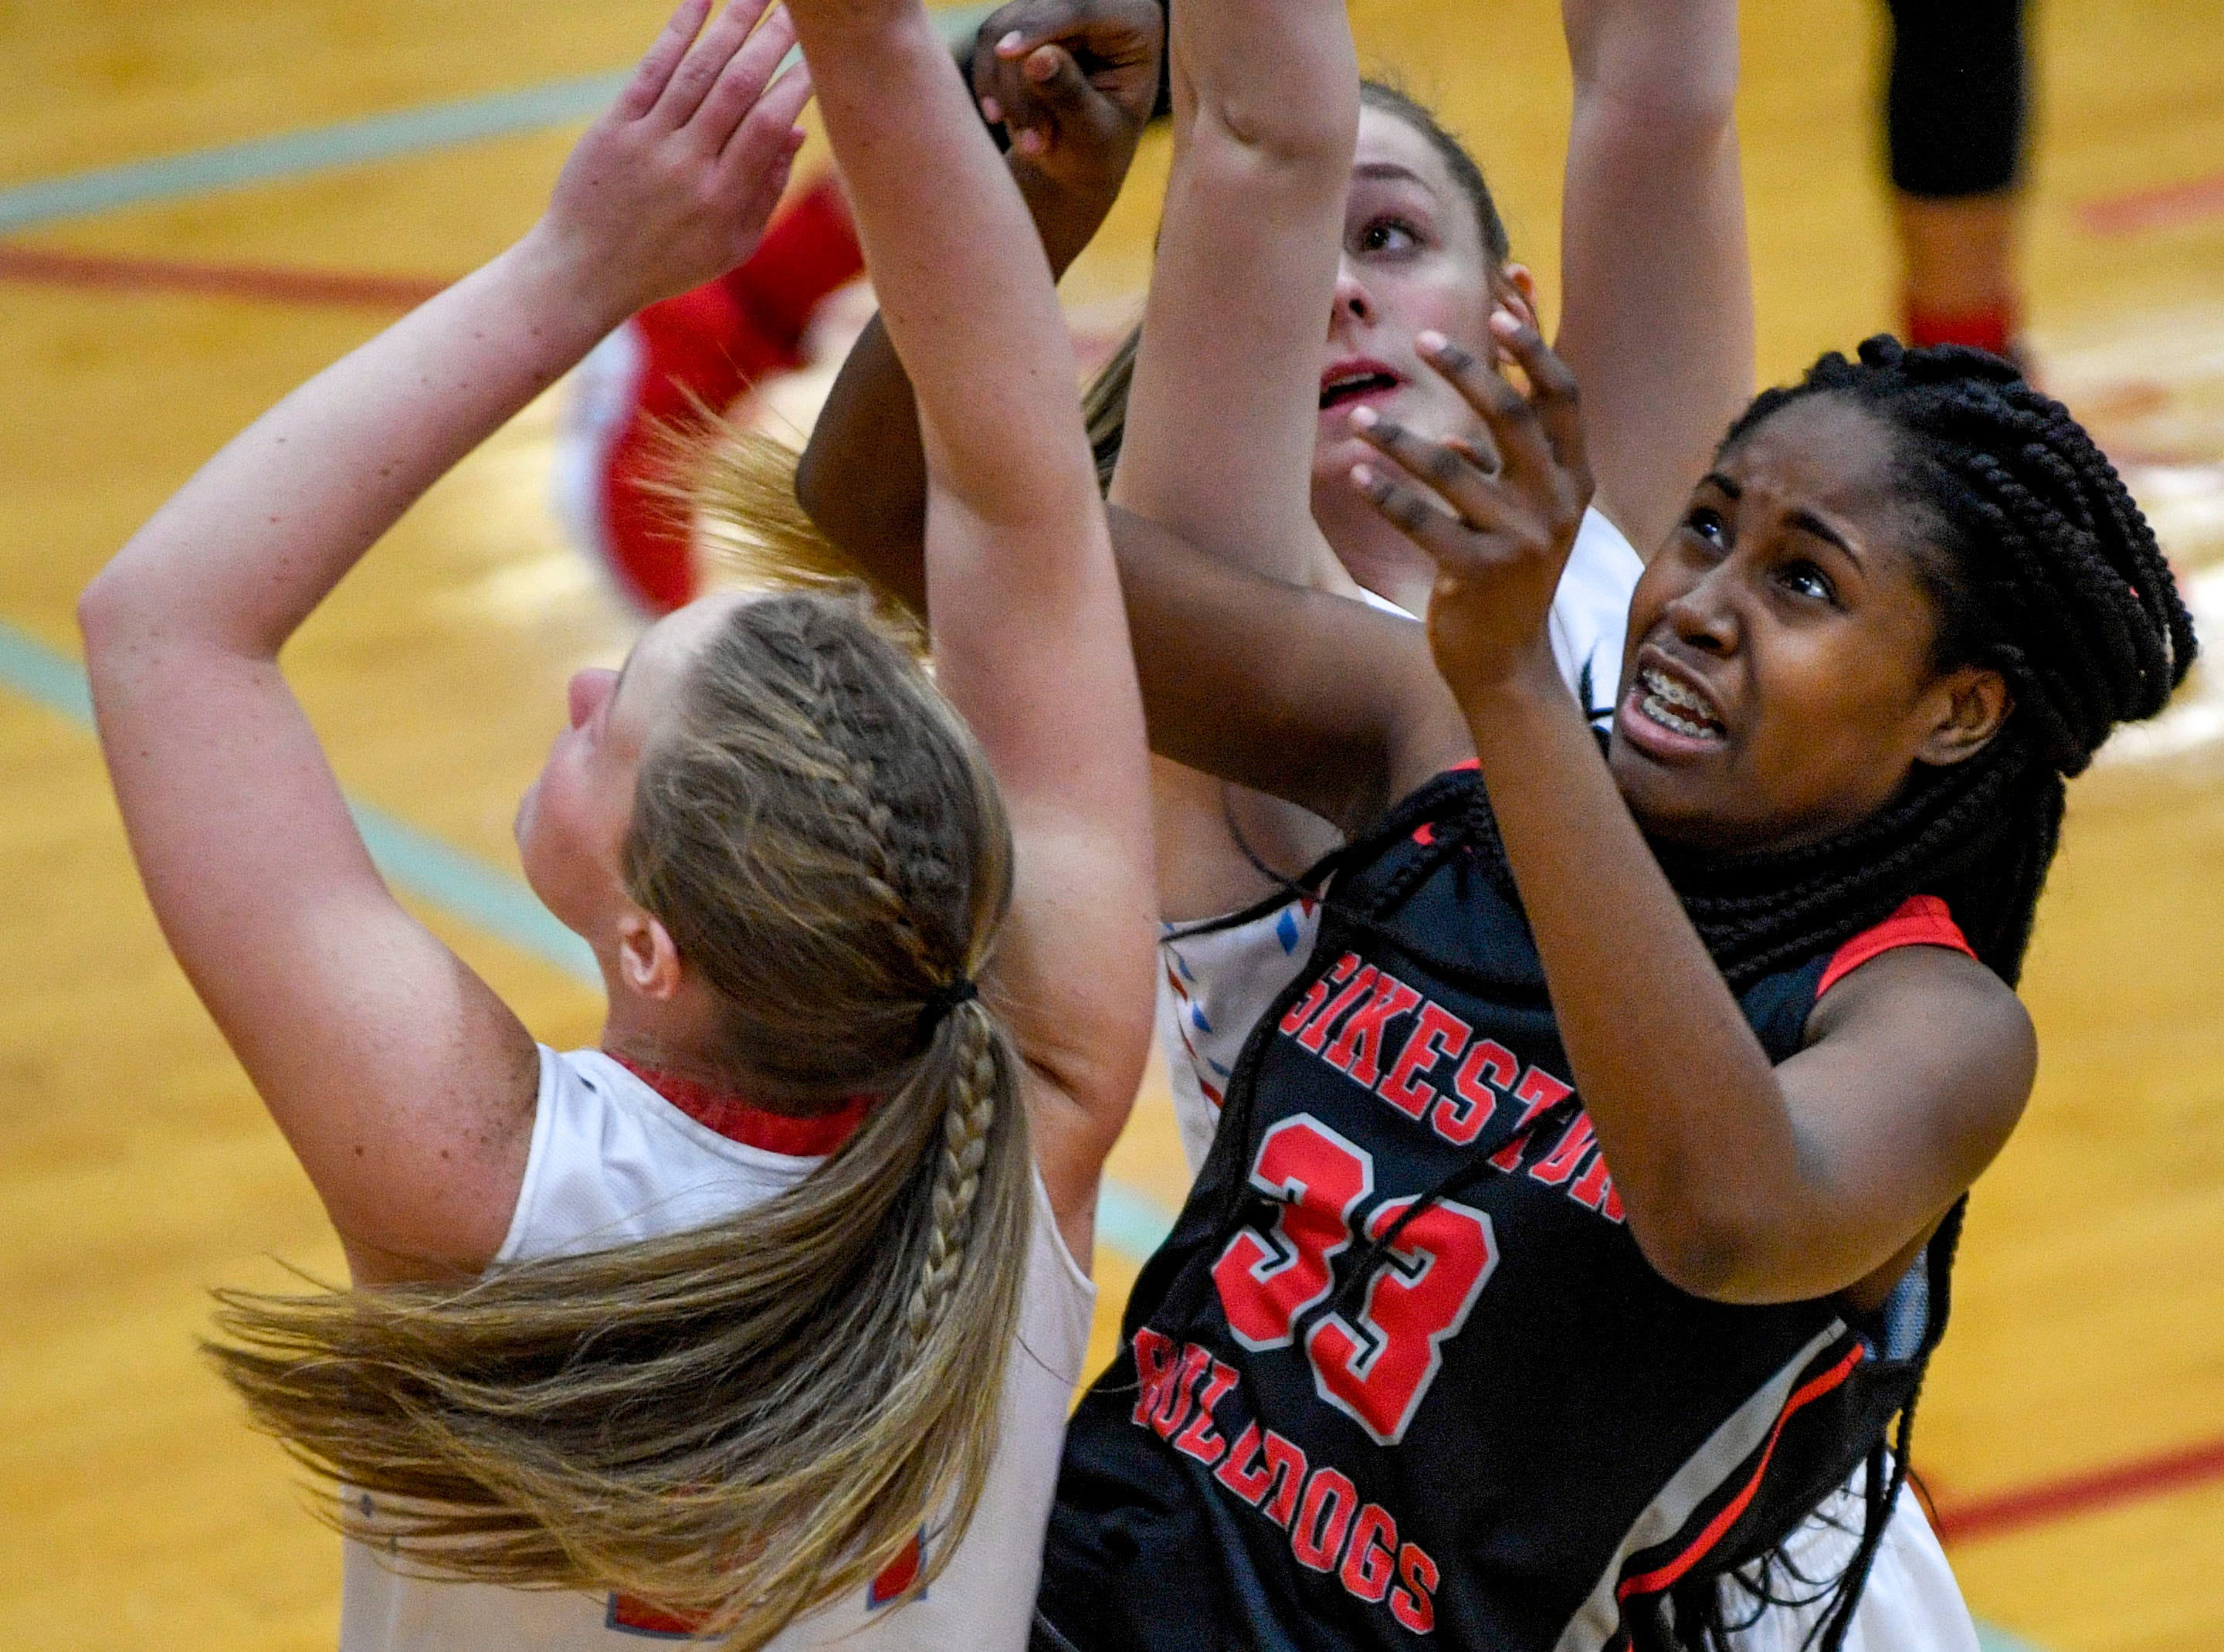 Sikeston's Karris Allen (33) takes a jump shot amongst a cluster of Gibson County players in a TSSAA girls basketball game between Gibson County and Sikeston (MO) in the Gibson County Christmas Tournament at Gibson County High School in Dyer, Tenn., on Thursday, Dec. 20, 2018.